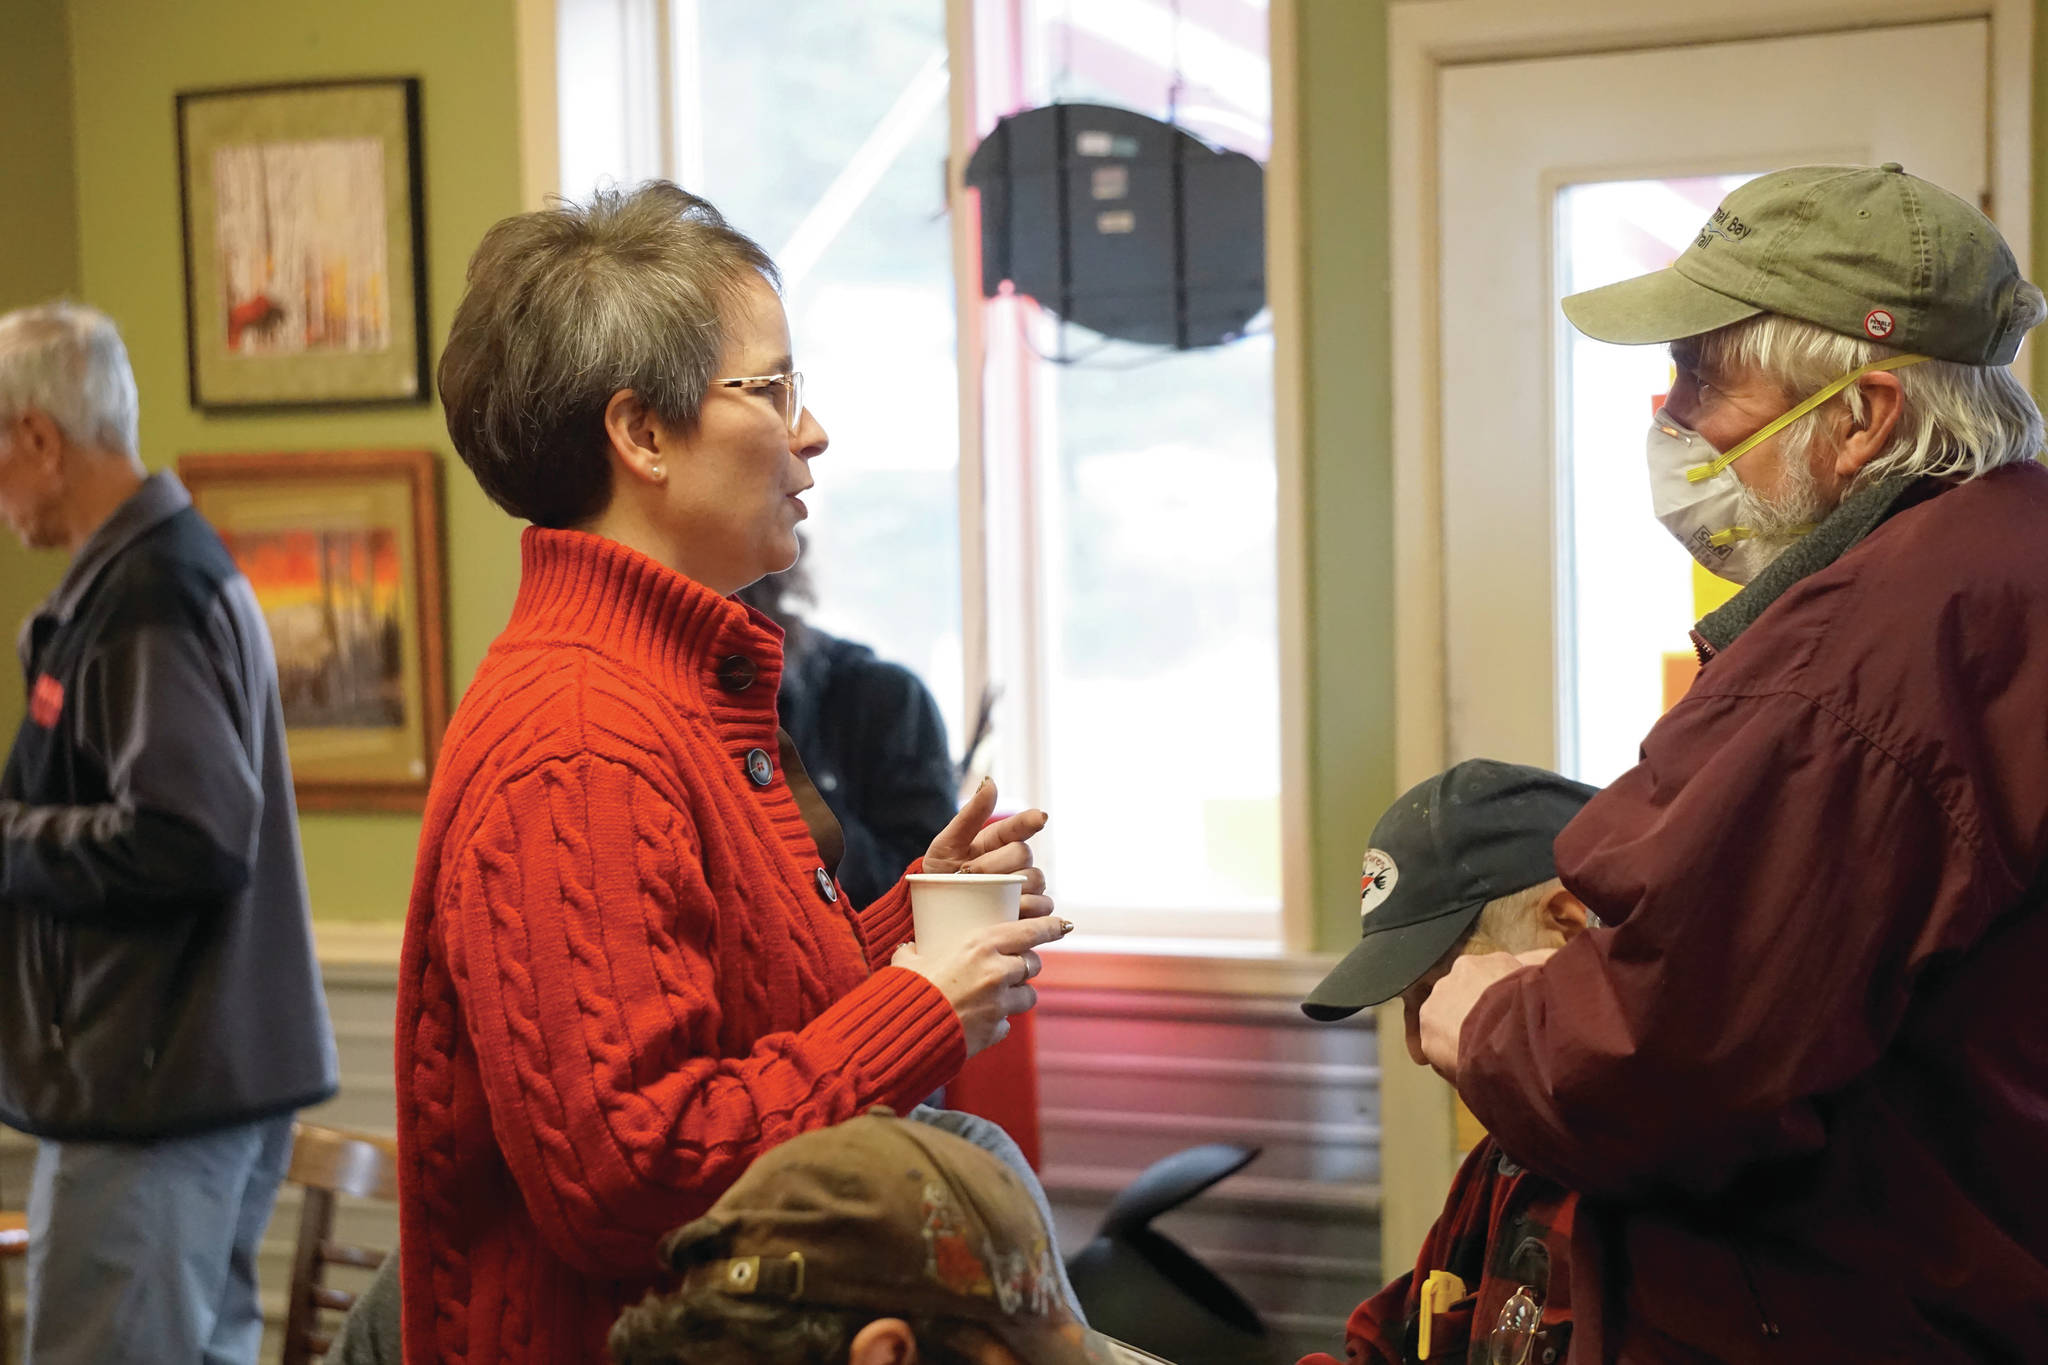 Rep. Sarah Vance, R-Homer, left, speaks with Robert Archibald, right, before holding a town hall meeting on Monday, March 29, 2021, at Captain's Coffee in Homer, Alaska. Archibald was only one of four people who wore face masks at the event of about 55 people. (Photo by Michael Armstrong/Homer News)